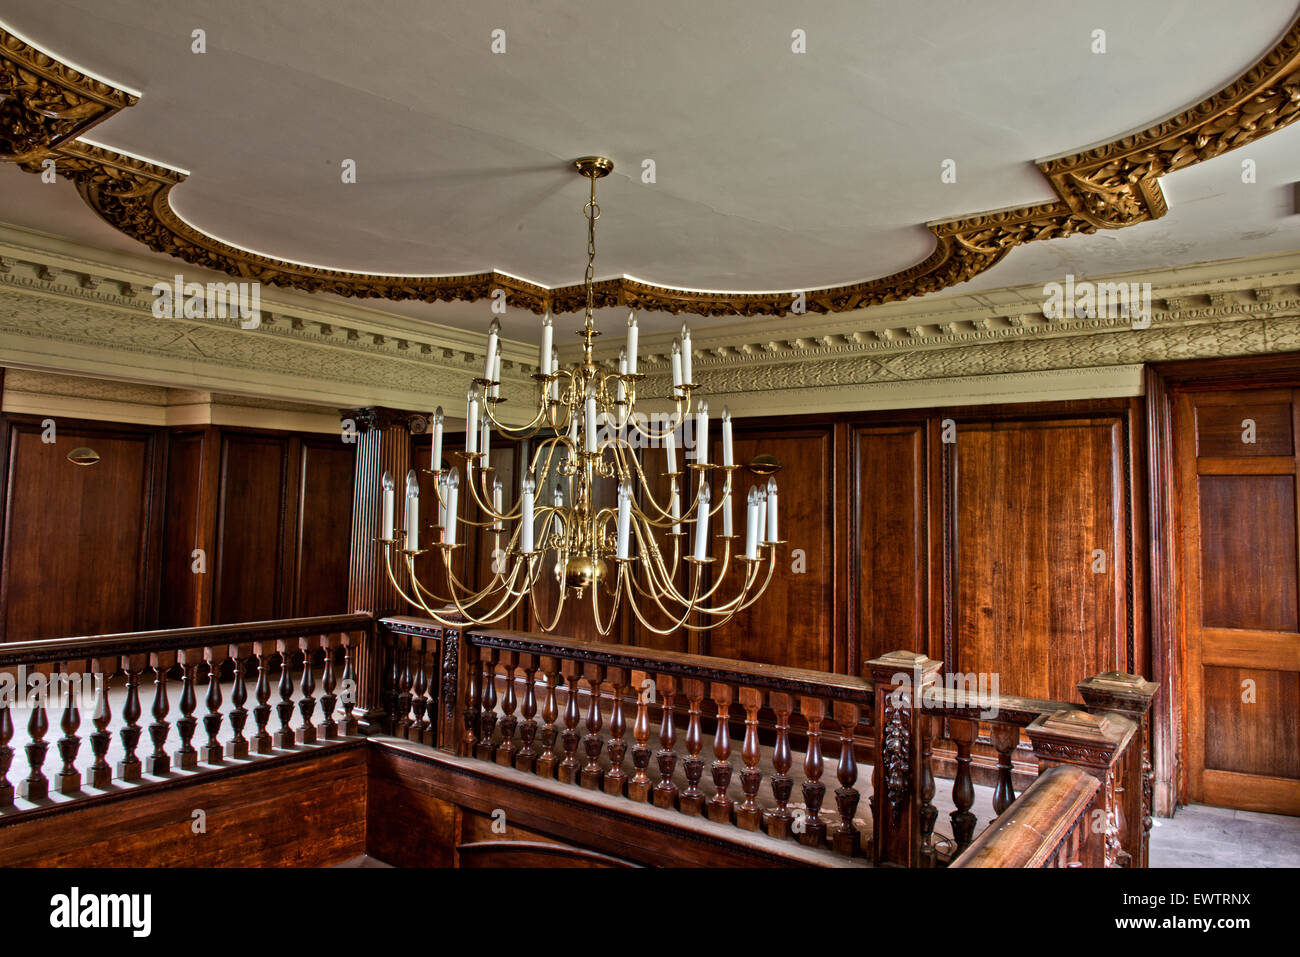 Once grand, the chandelier and staircase inside Silverlands Orphanage, Chertsey, Surrey, UK - Stock Image